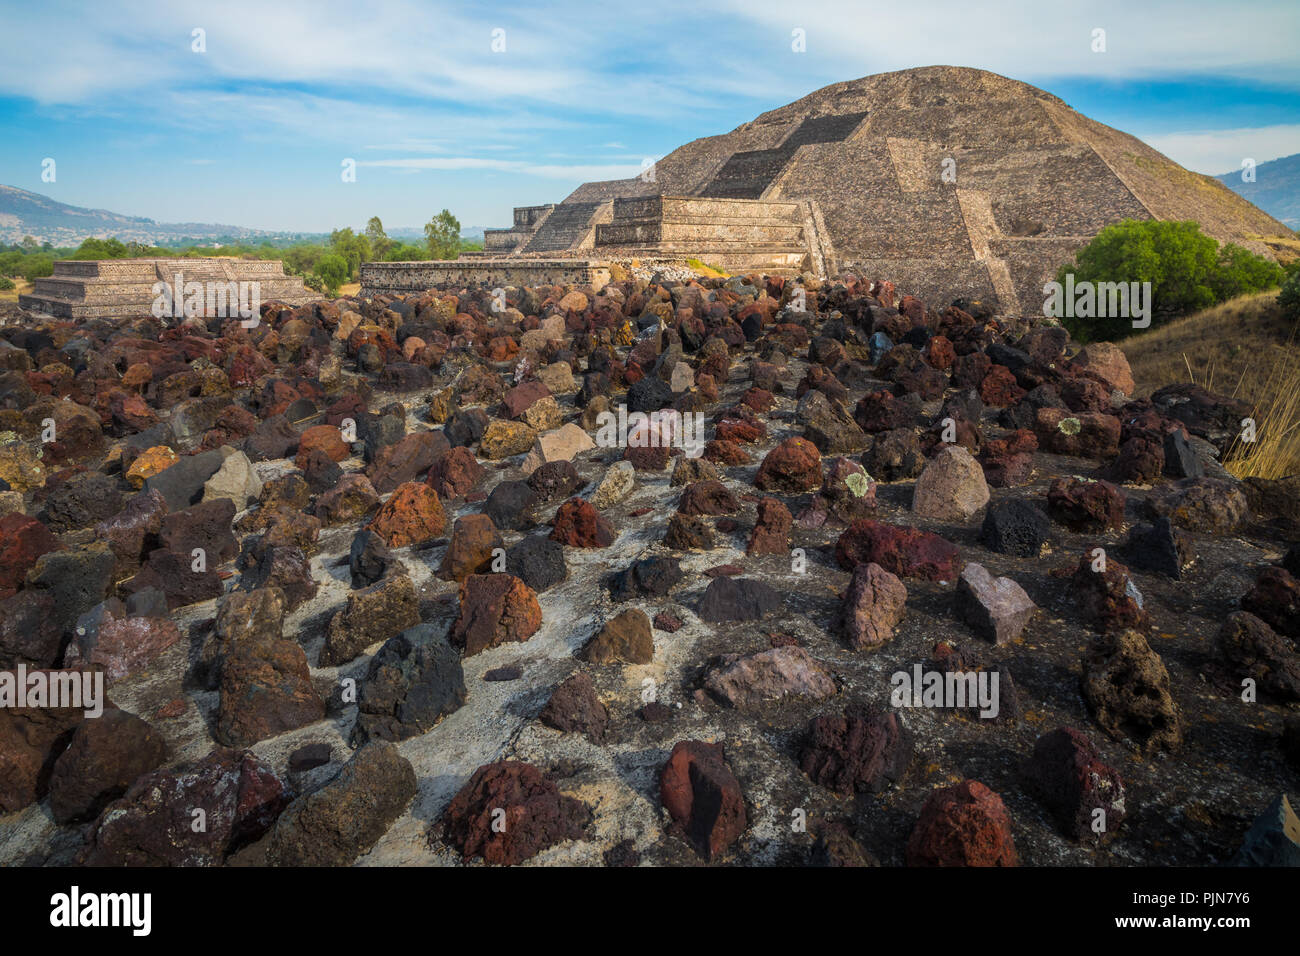 The Pyramid of the Moon is the second largest pyramid in modern-day San Juan Teotihuacán, Mexico, after the Pyramid of the Sun. - Stock Image